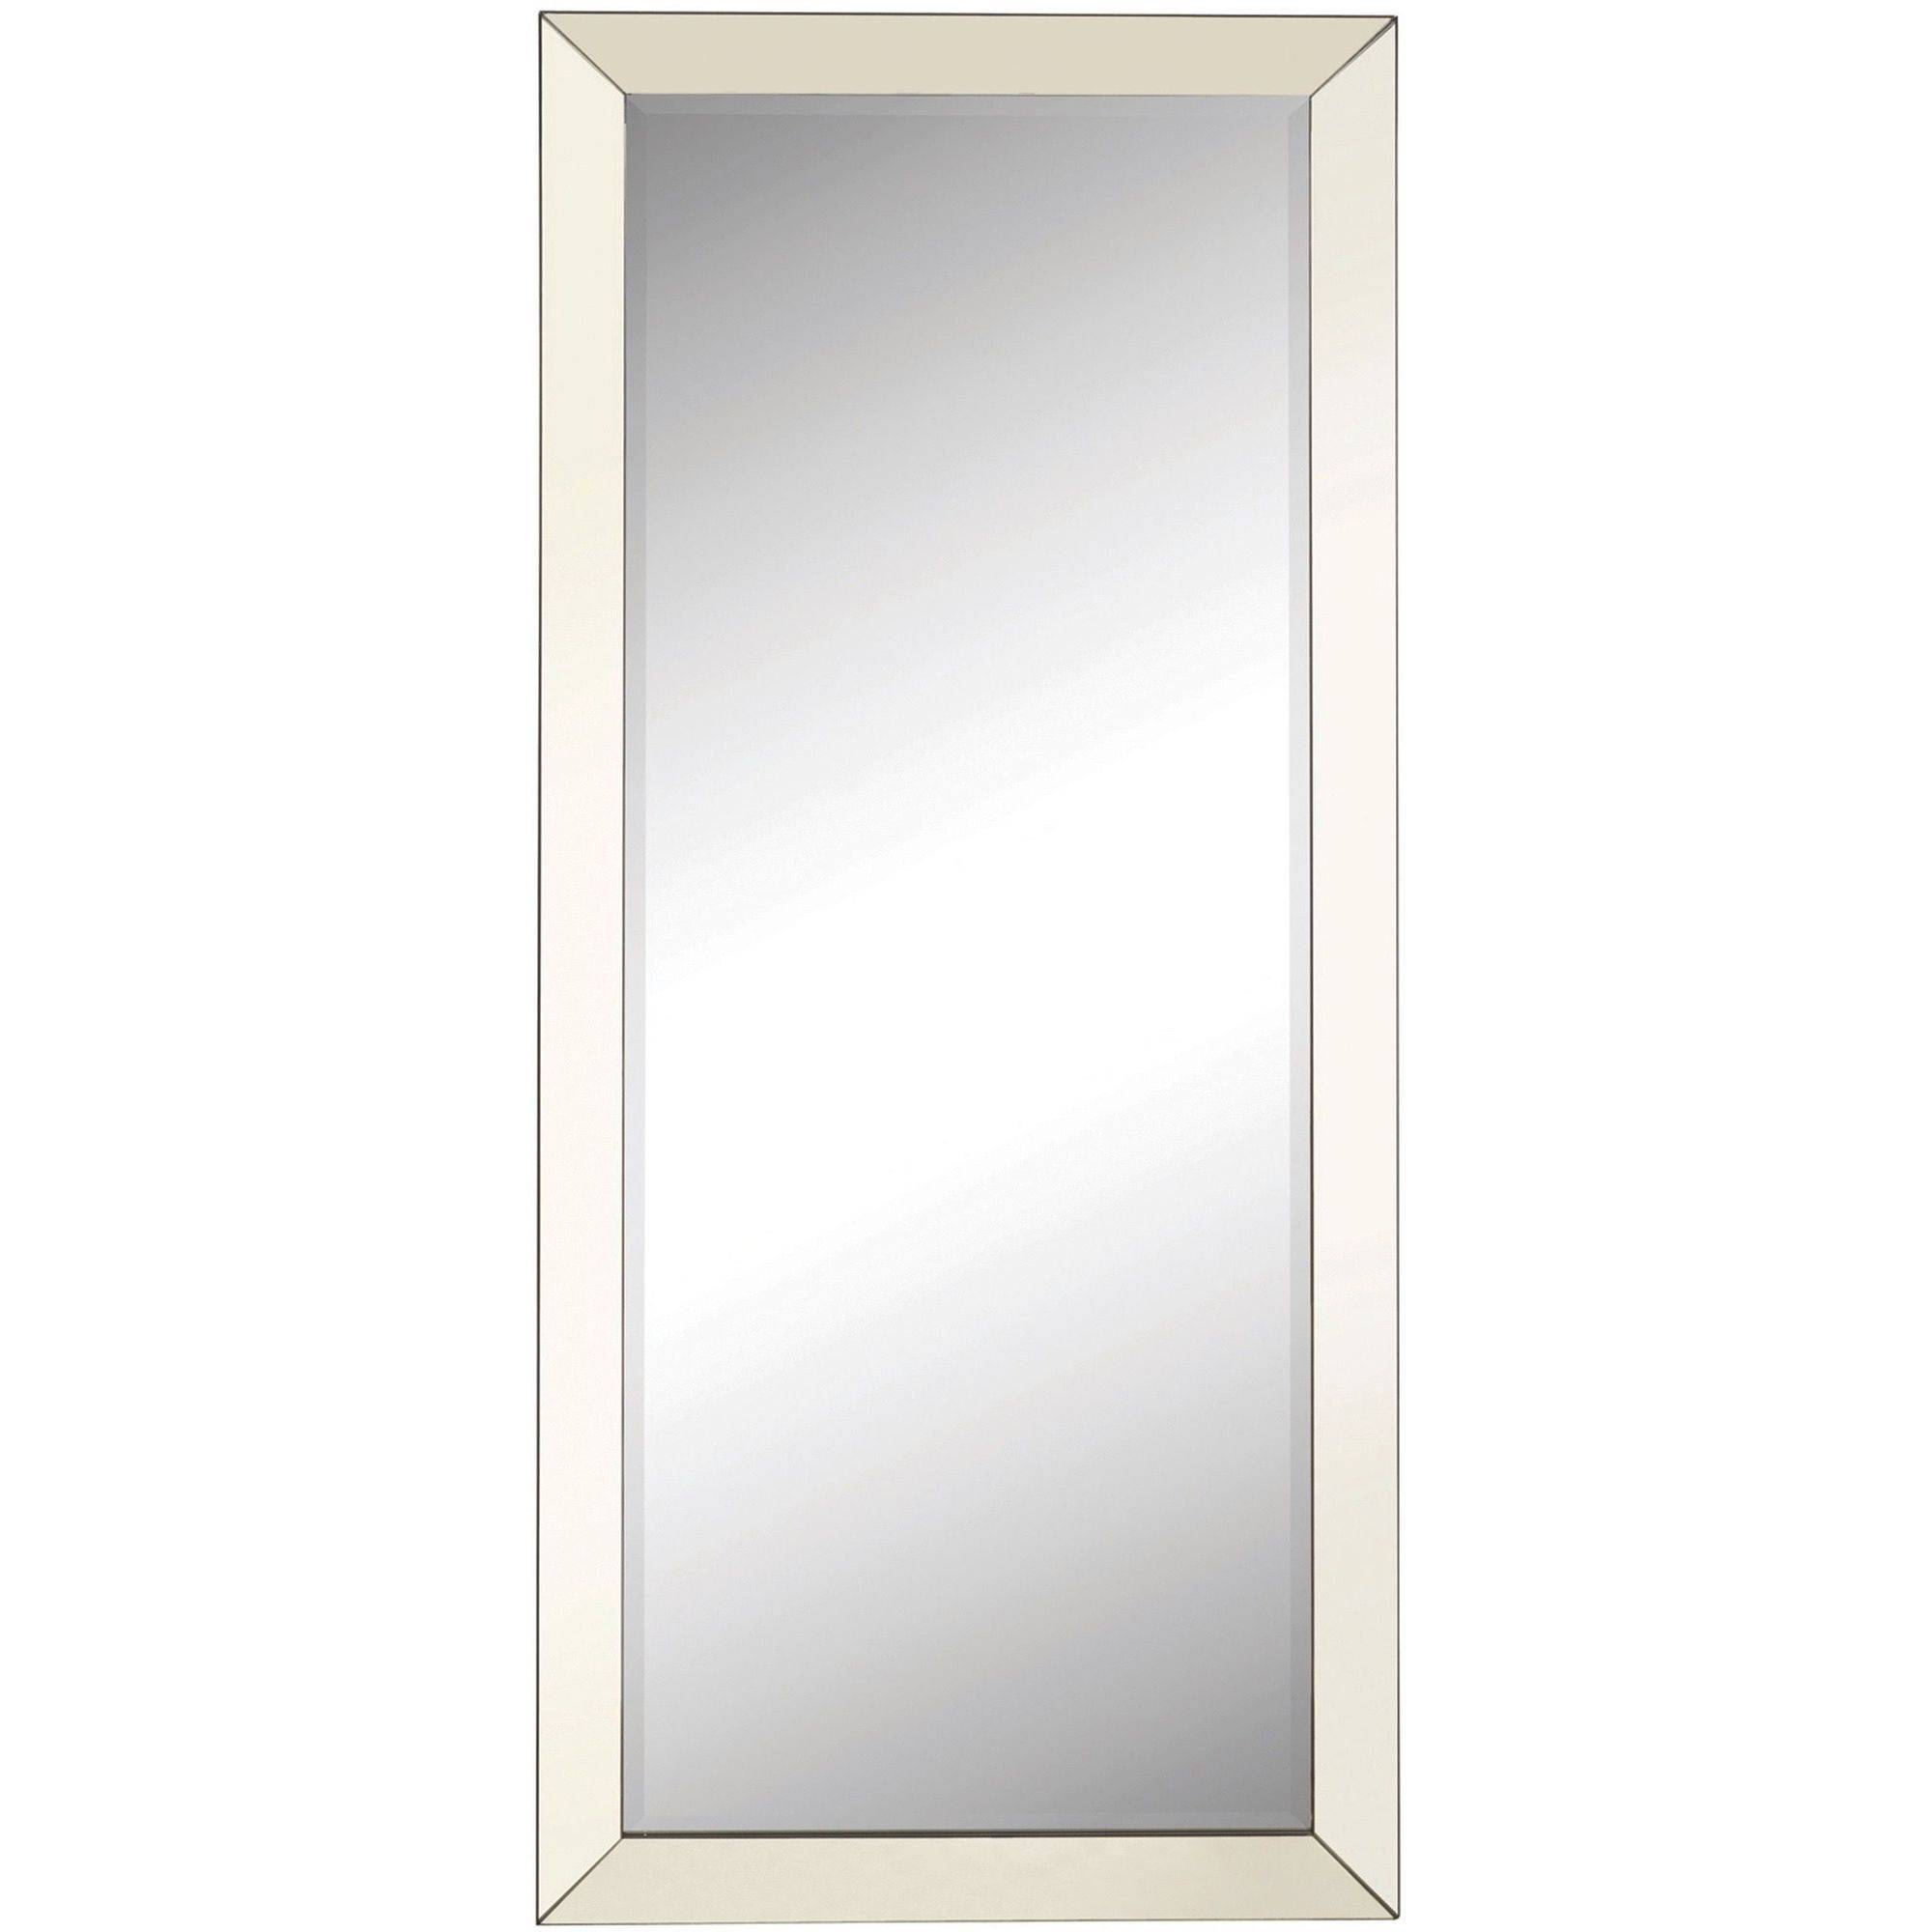 silver floor mirror. Large Mirrors For Wall Full Length Free Standing Mirror Floor Home Decor Beveled Silver R